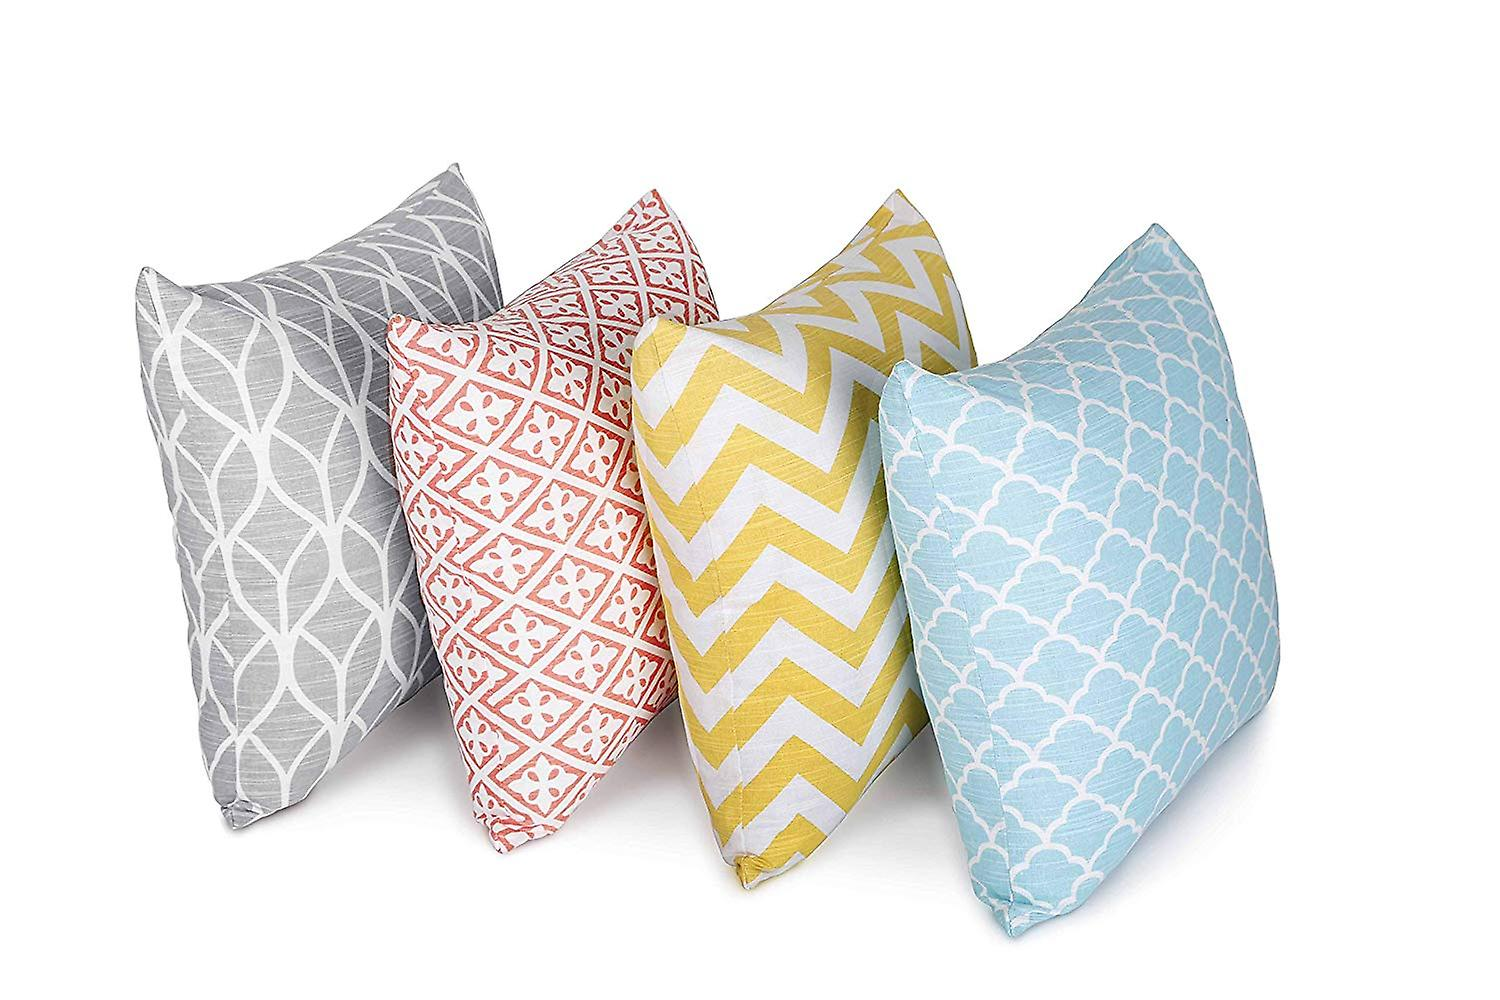 Penguin Home Pack of 4 Co-ordinated Square Cushion Covers 100% Cotton